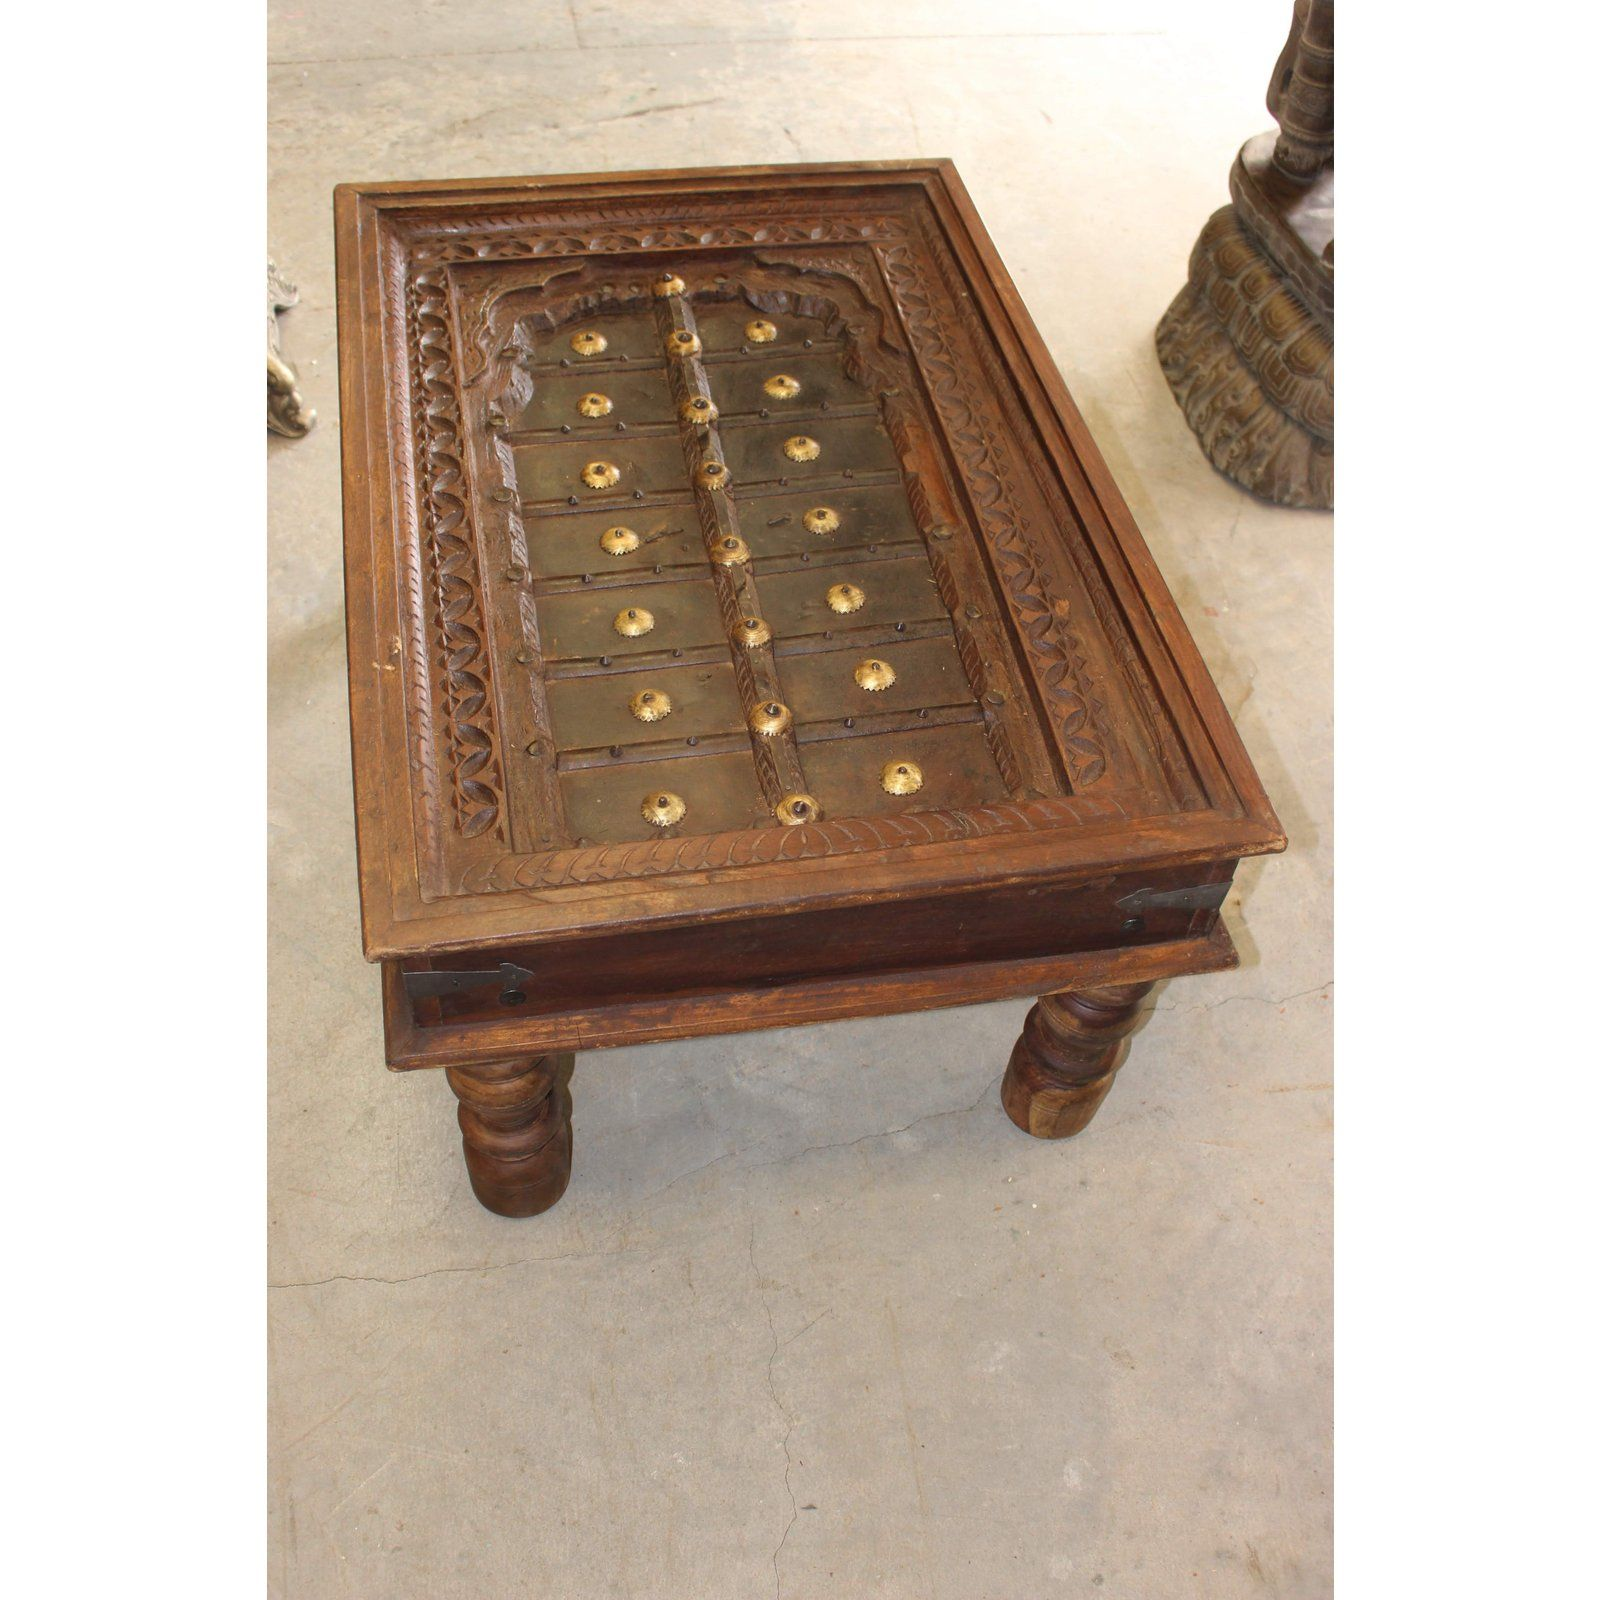 Antique Indian Hand Carved Brass Medallions Farmhouse Chai Coffee Table Coffee Table Antique Coffee Tables Indian Coffee Table [ 1600 x 1600 Pixel ]